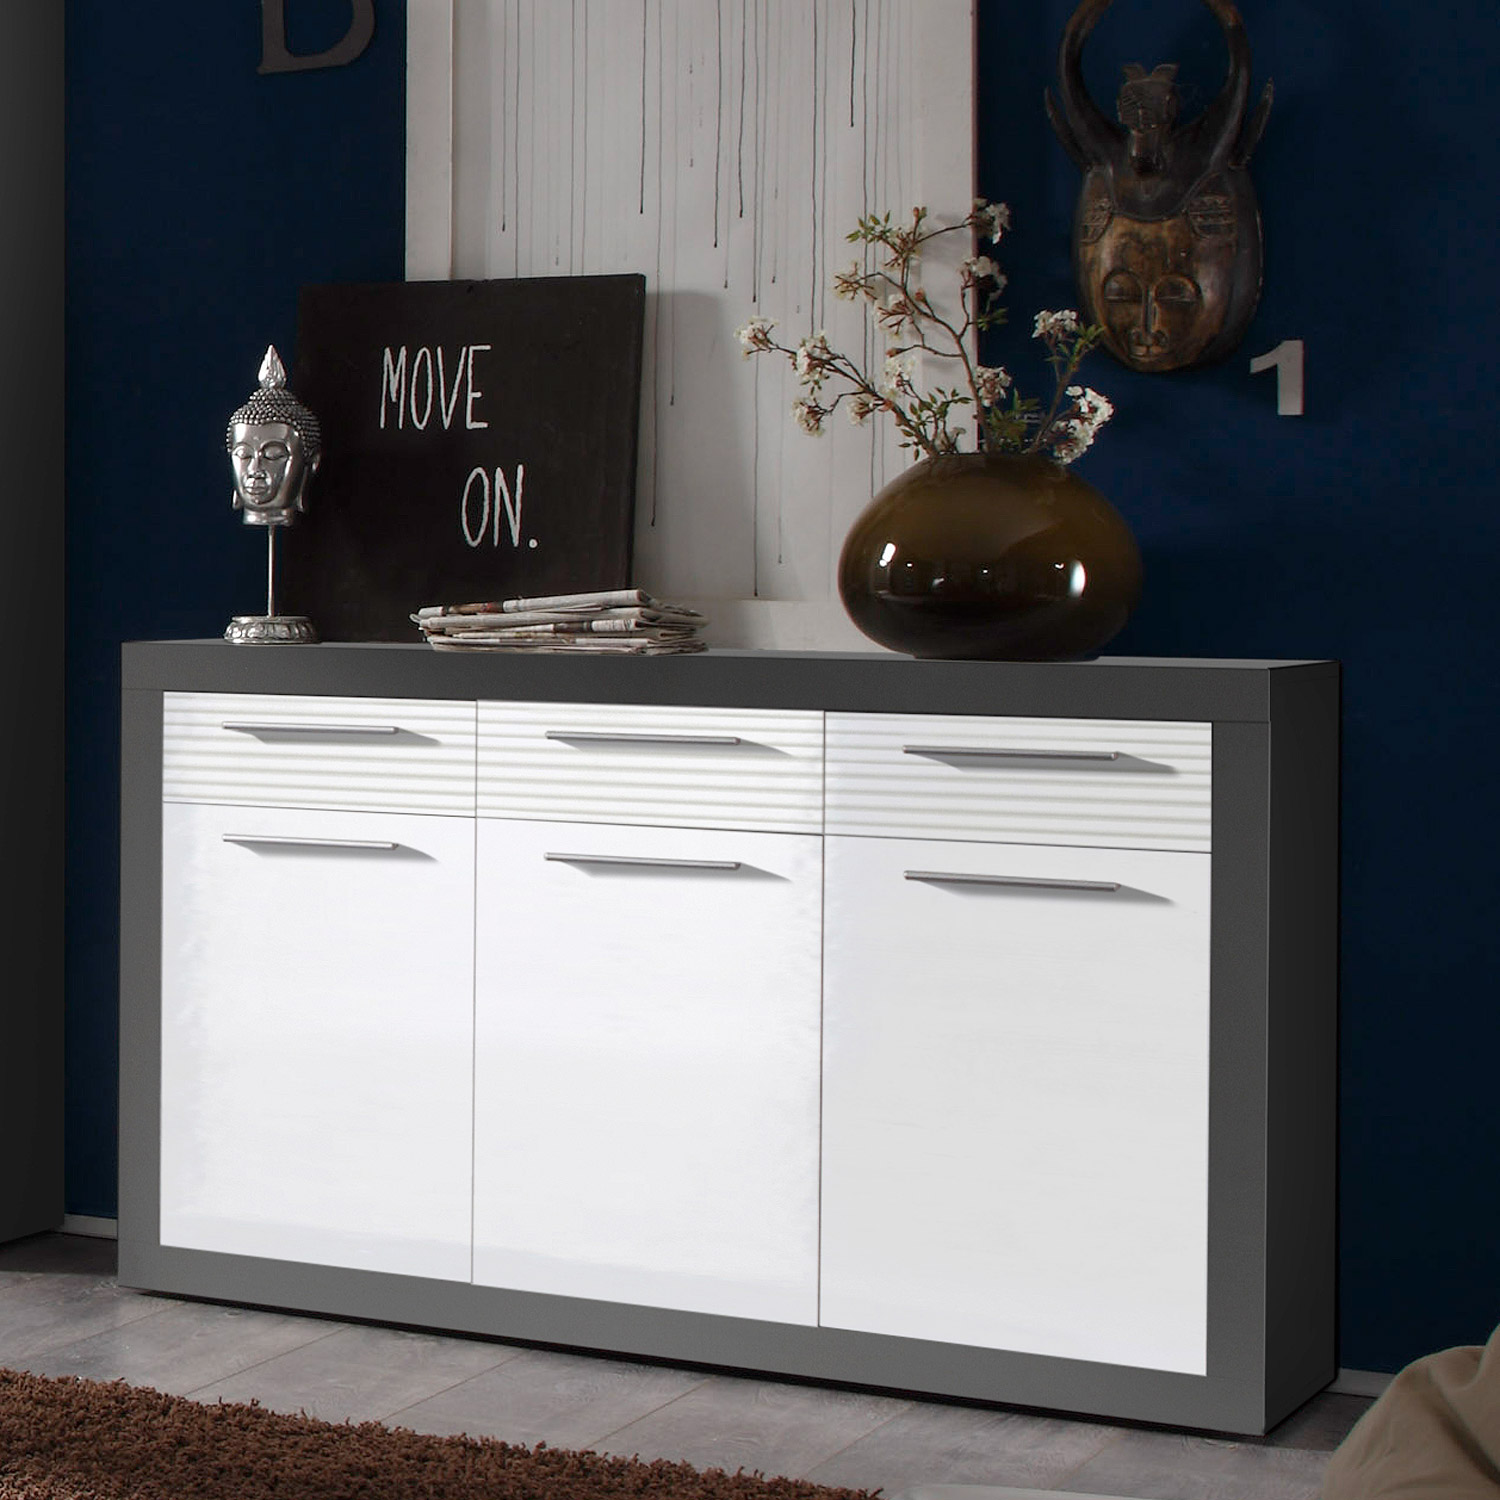 sideboard kolibri kommode schrank mdf wei hochglanz und grau ebay. Black Bedroom Furniture Sets. Home Design Ideas